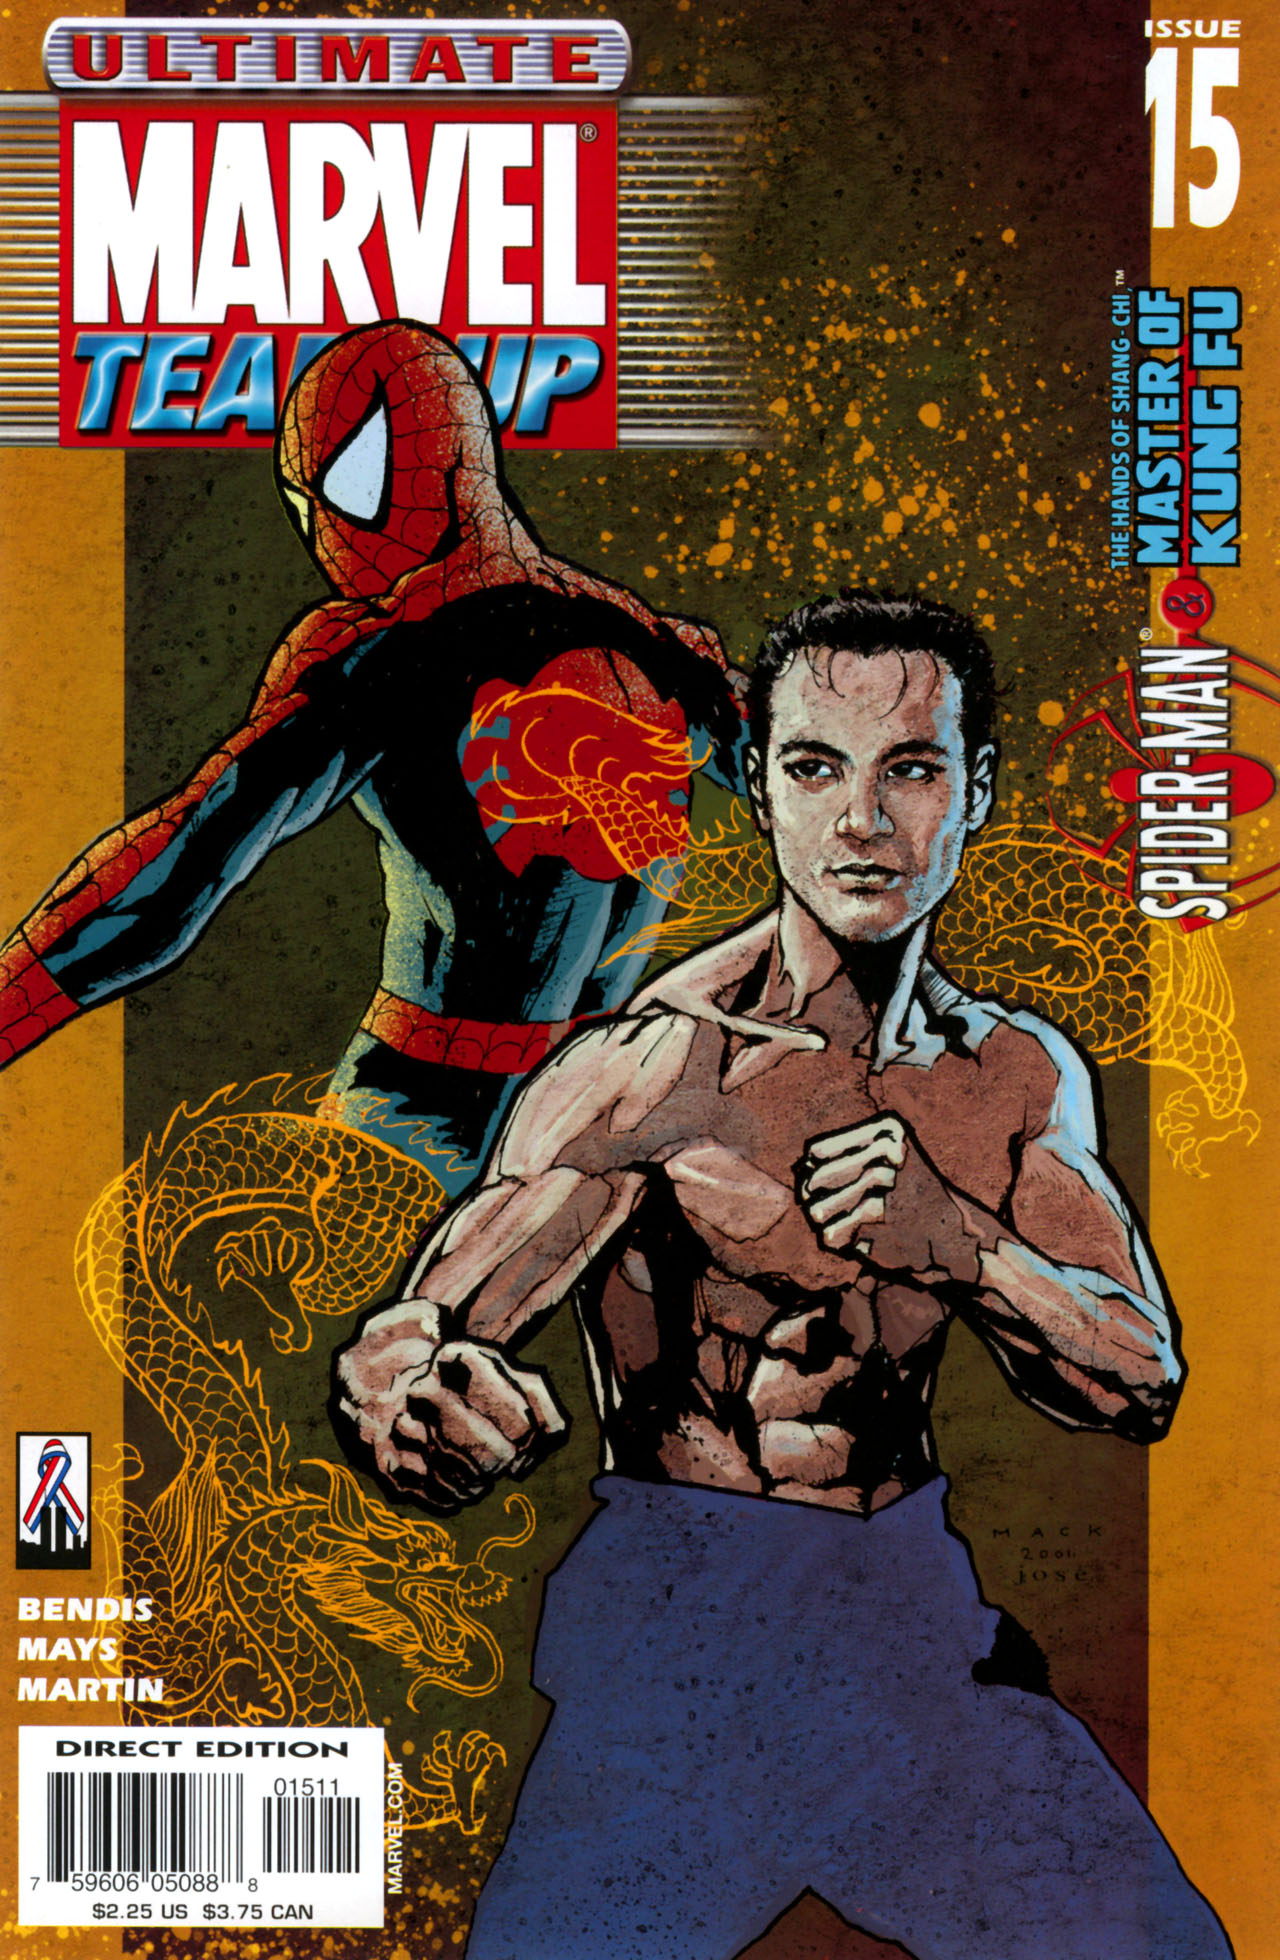 Read online Ultimate Marvel Team-Up comic -  Issue #15 - 1